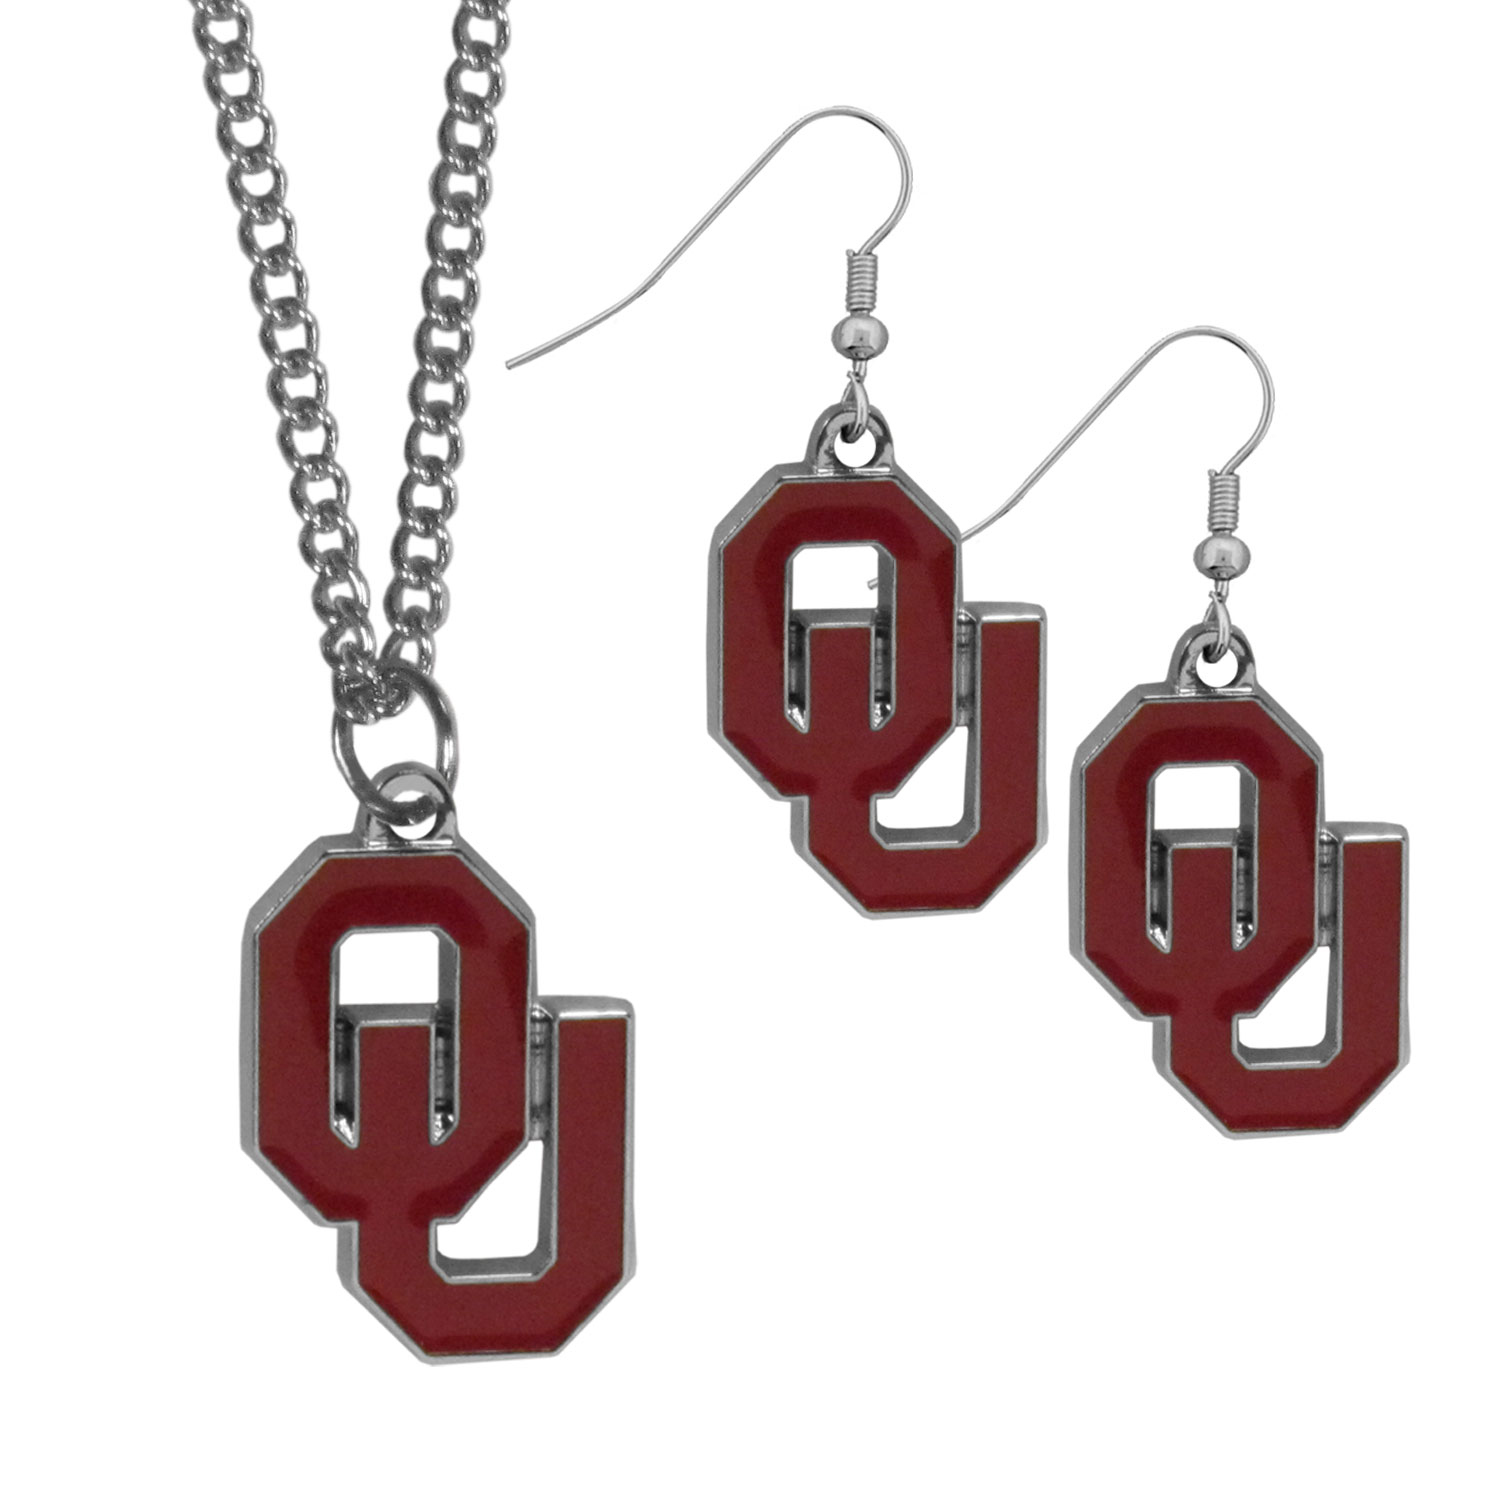 Oklahoma Sooners Dangle Earrings and Chain Necklace Set - This classic jewelry set contains are most popular Oklahoma Sooners dangle earrings and 22 inch chain necklace. The trendy, dangle earrings are lightweight and feature a fully cast metal team charm with enameled team colors. The matching necklace completes this fashion forward combo and is a spirited set that is perfect for game day but nice enough for everyday.